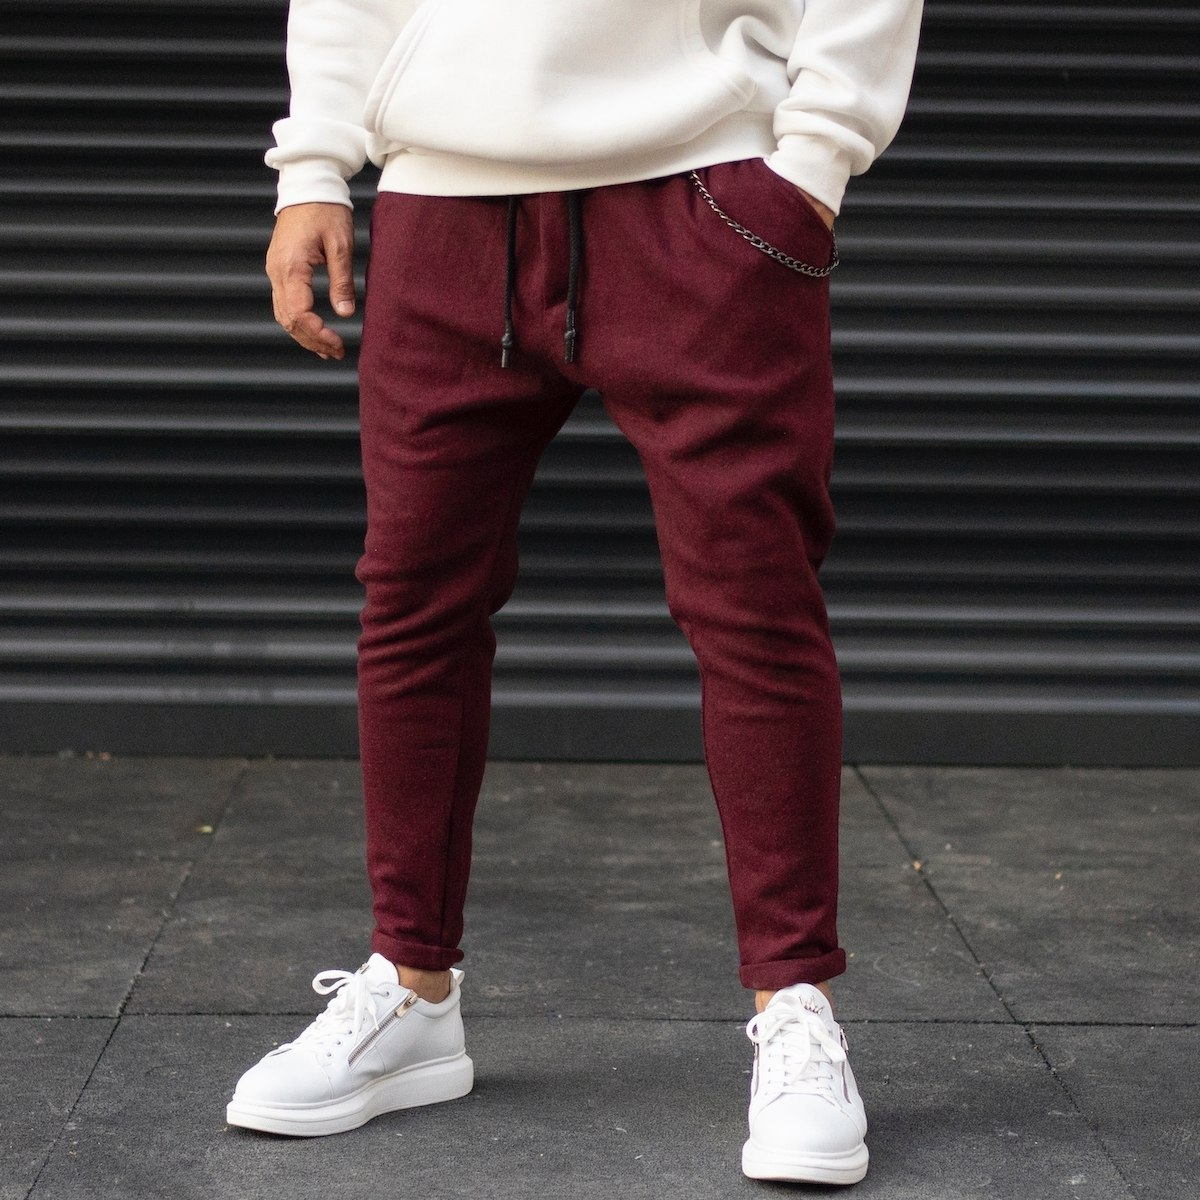 Men's Cachet Textured Sweatpants With Chain Detail In Claret Red